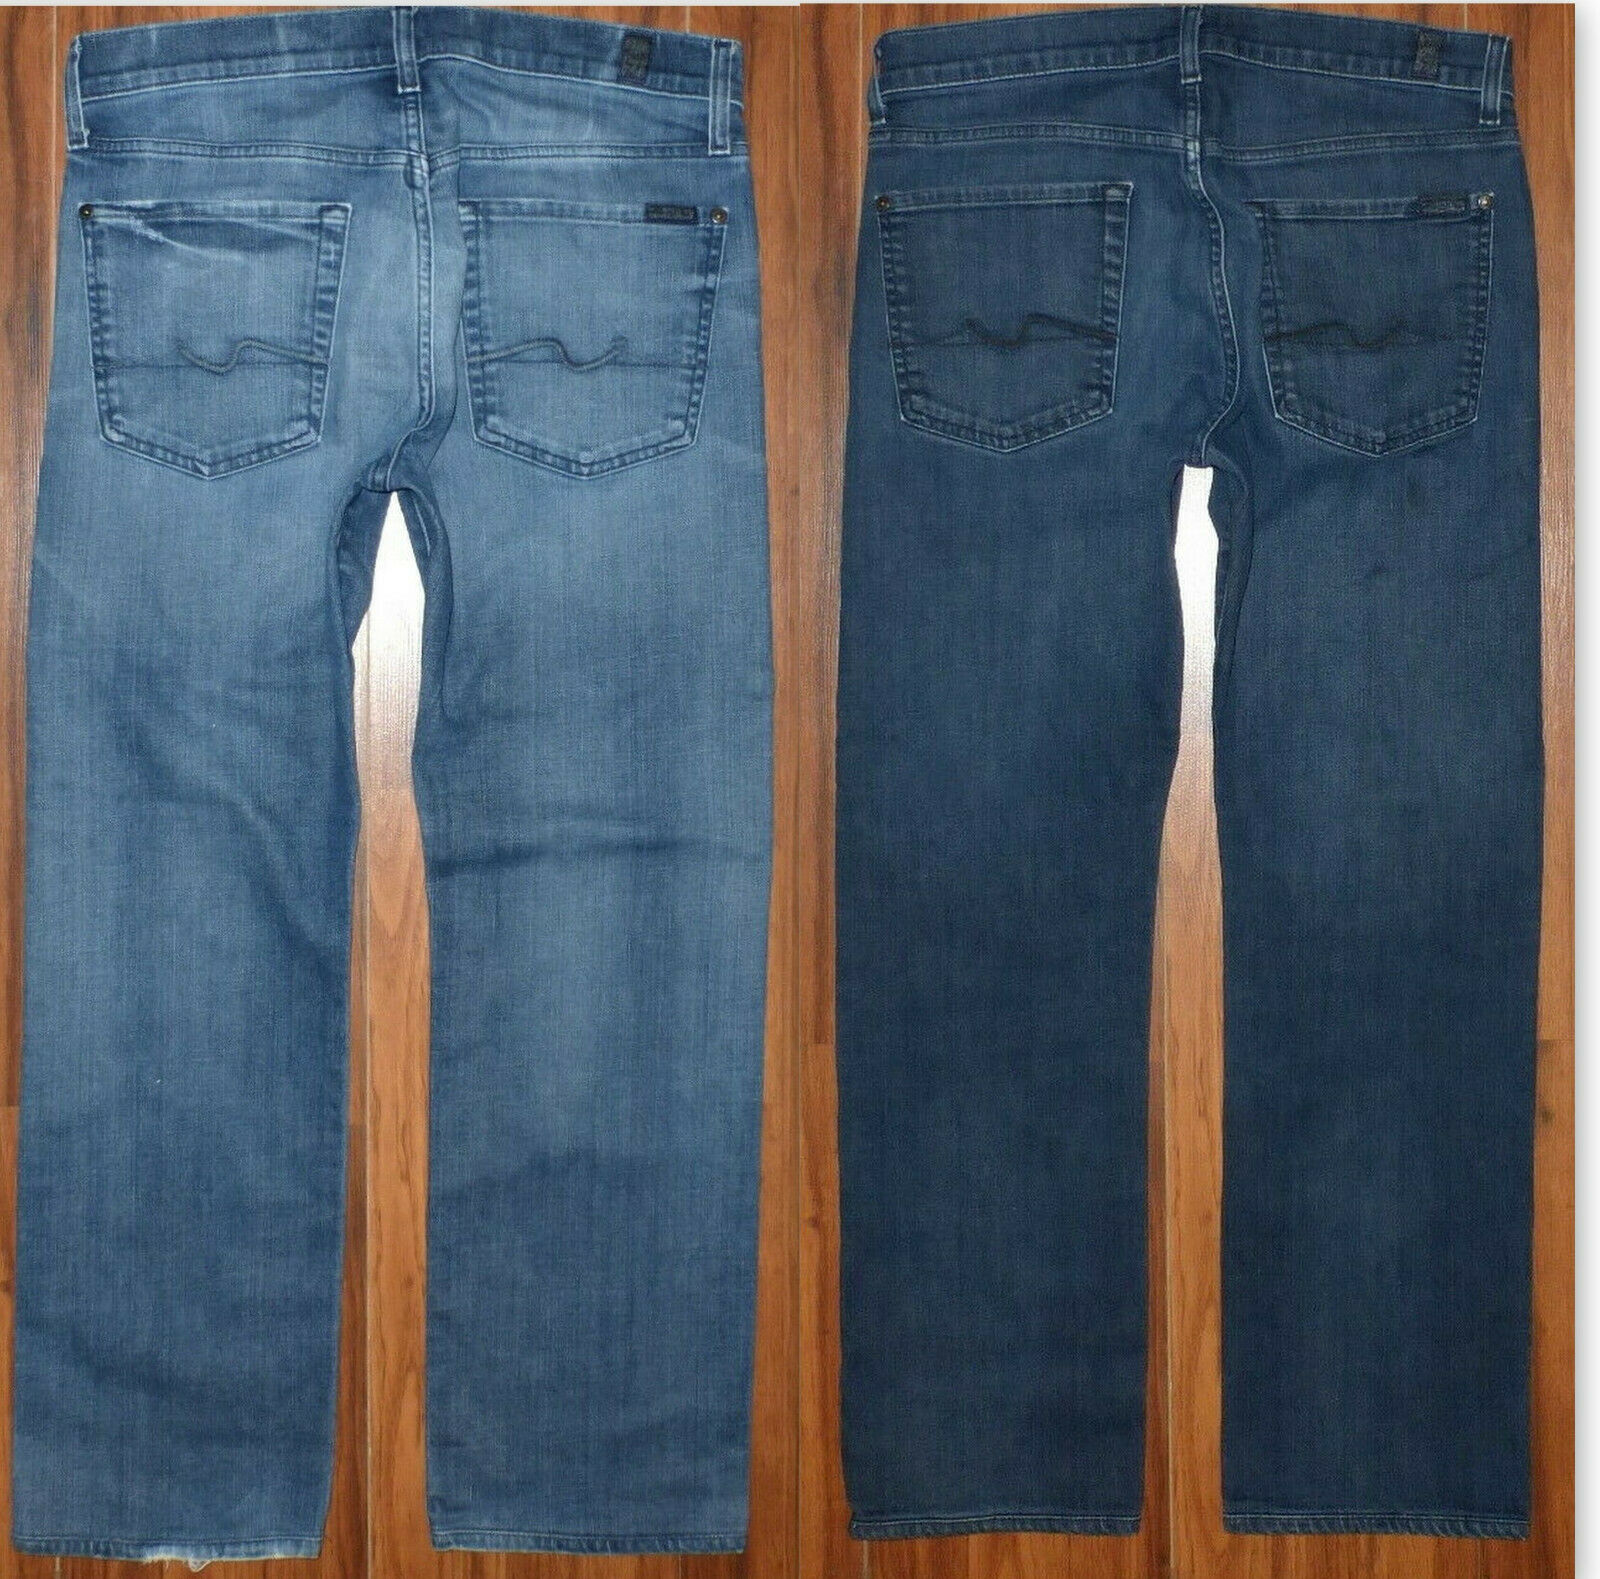 2 PAIR MENS 7 FOR ALL MANKIND THE STANDARD STRETCH FIT BUTTON FLY JEANS 31 X 27